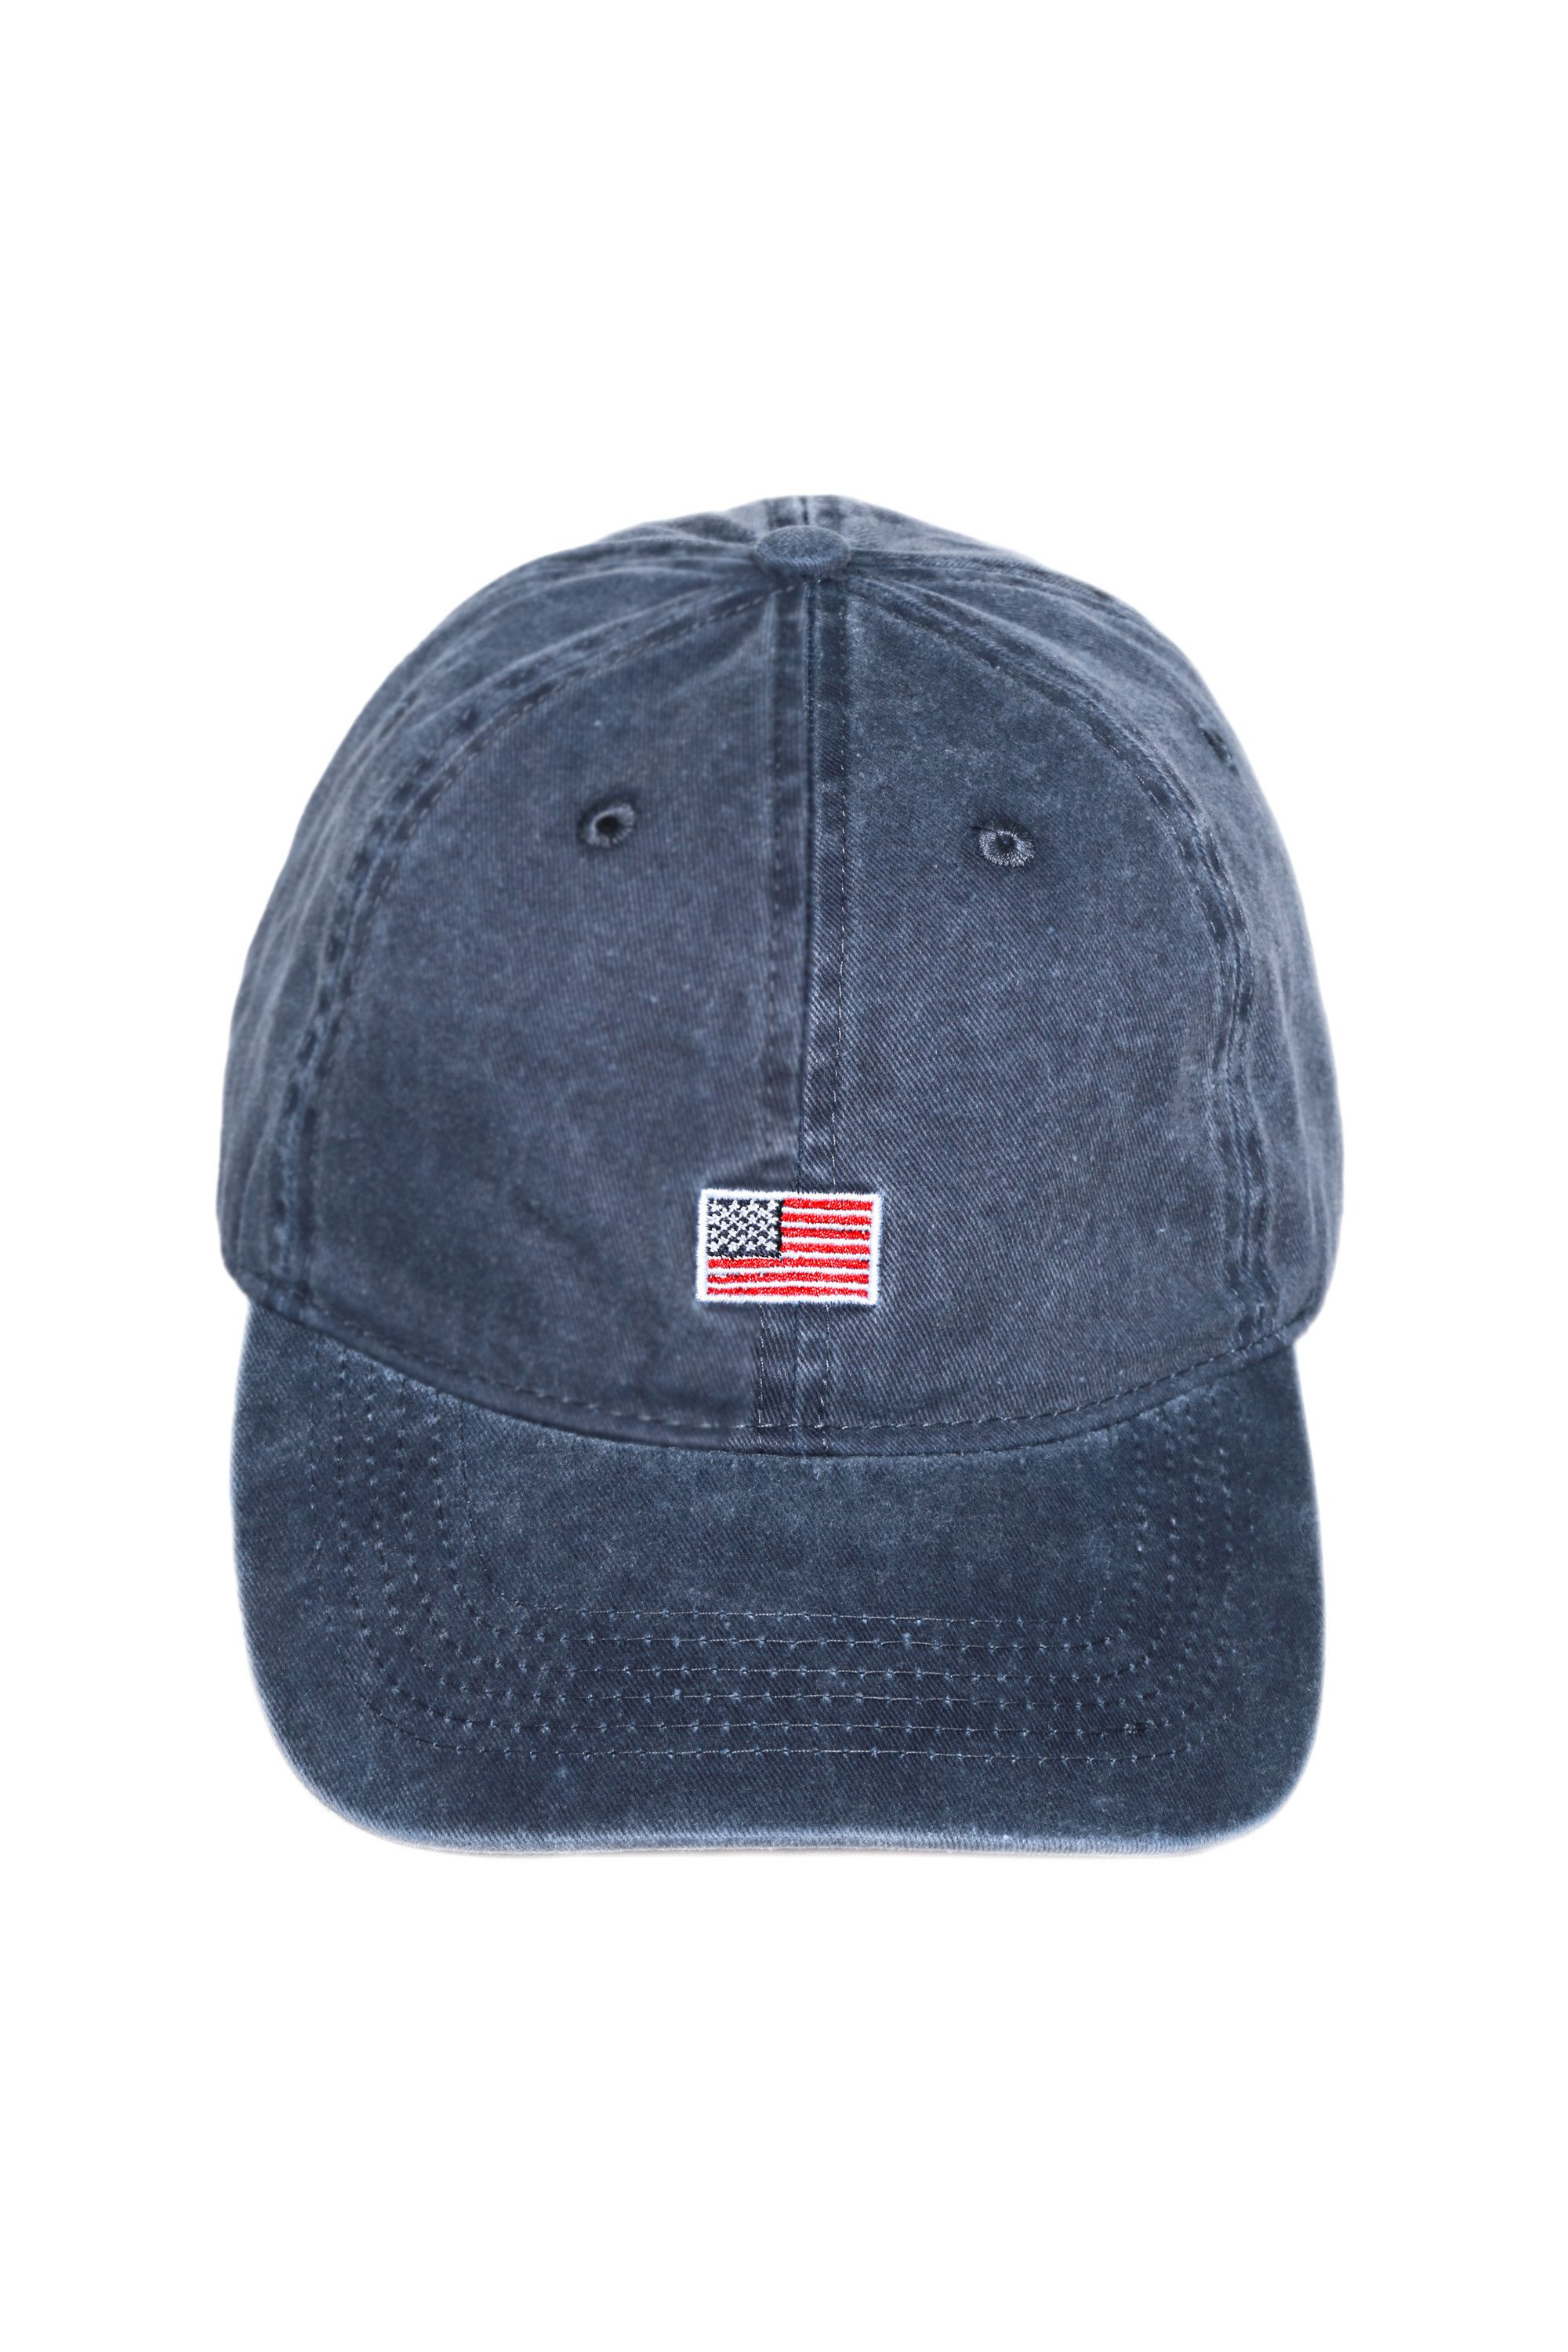 A tiny American flag on a dad hat  How friggin trendy are we